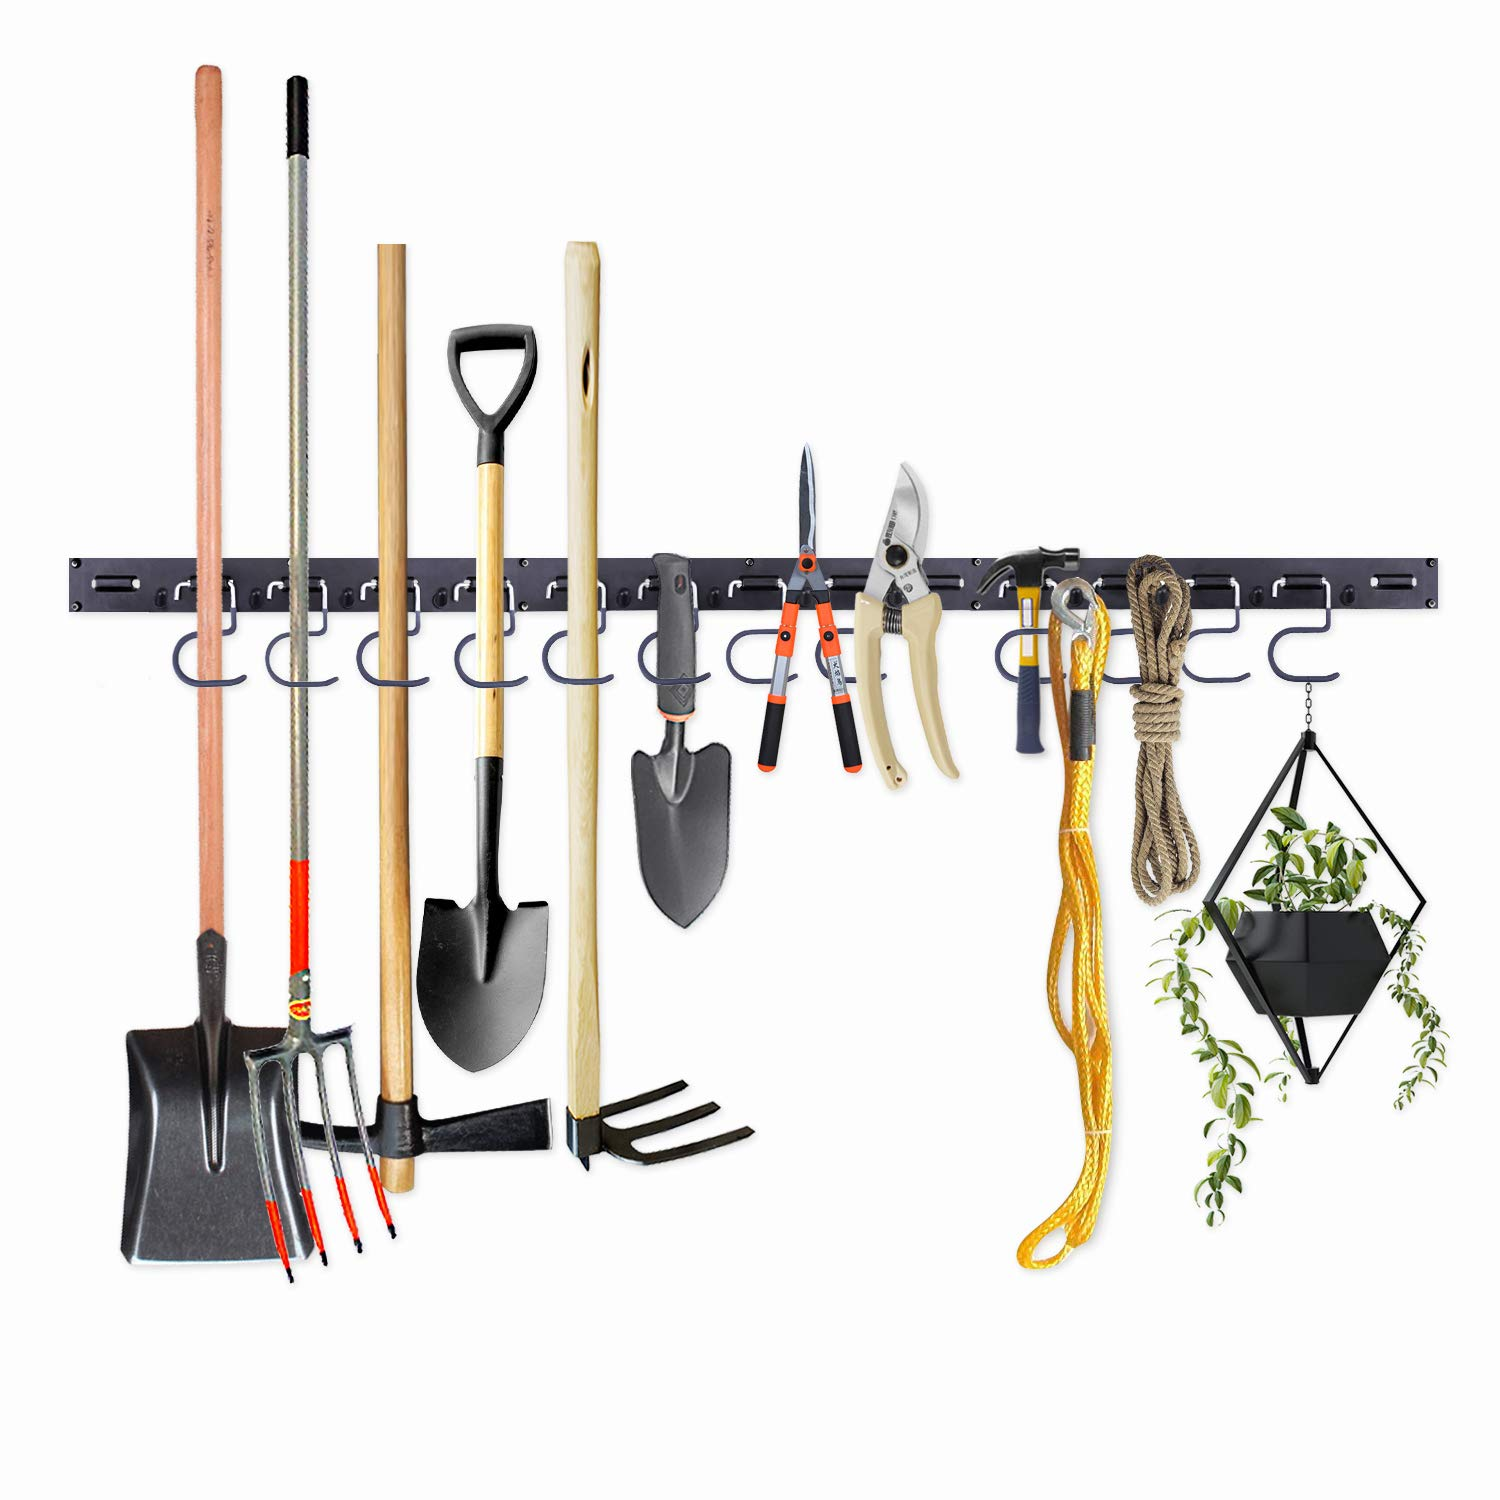 Adjustable Storage System 48 Inch, Wall Holders for Tools, Wall Mount Tool Organizer, Garage Organizer, Garden Tool Organizer, Garage Storage by NZACE